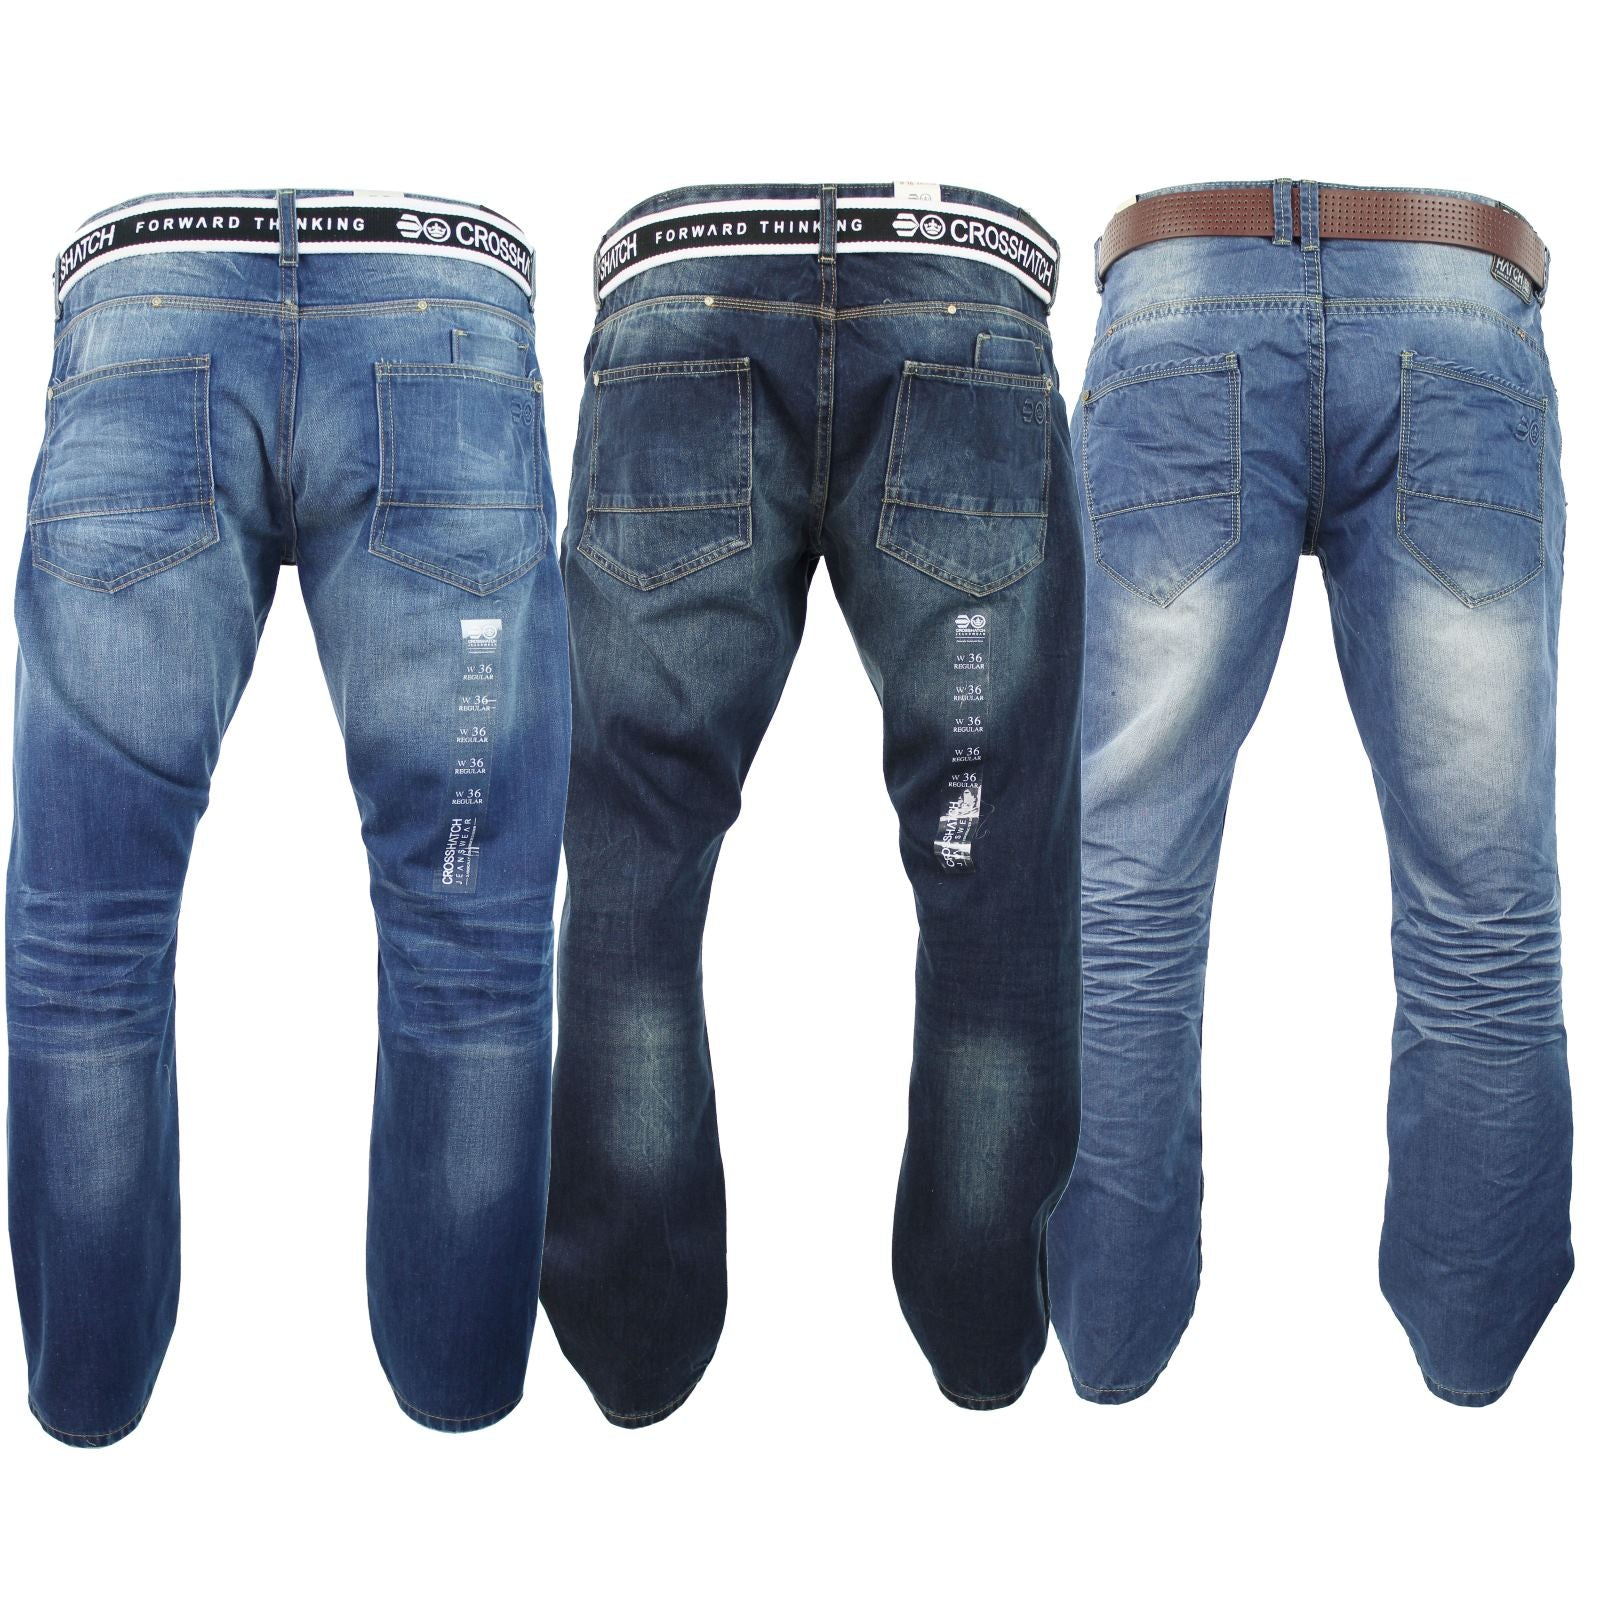 Mens Crosshatch Jeans Raw Stone Washed Denim Button Fly-Main Image